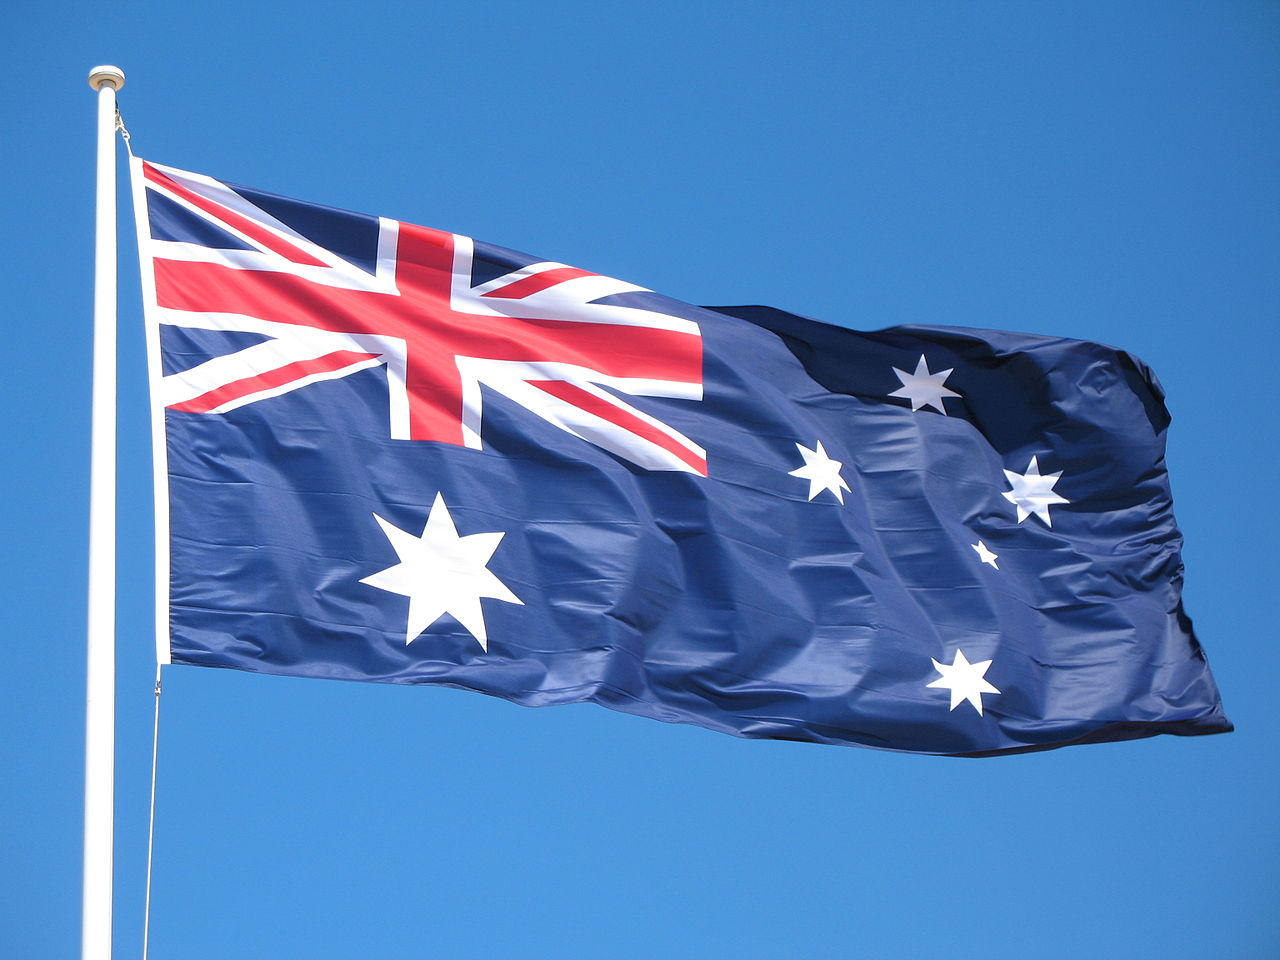 The Australian Flag Holds Much Meaning For The Commonwealth